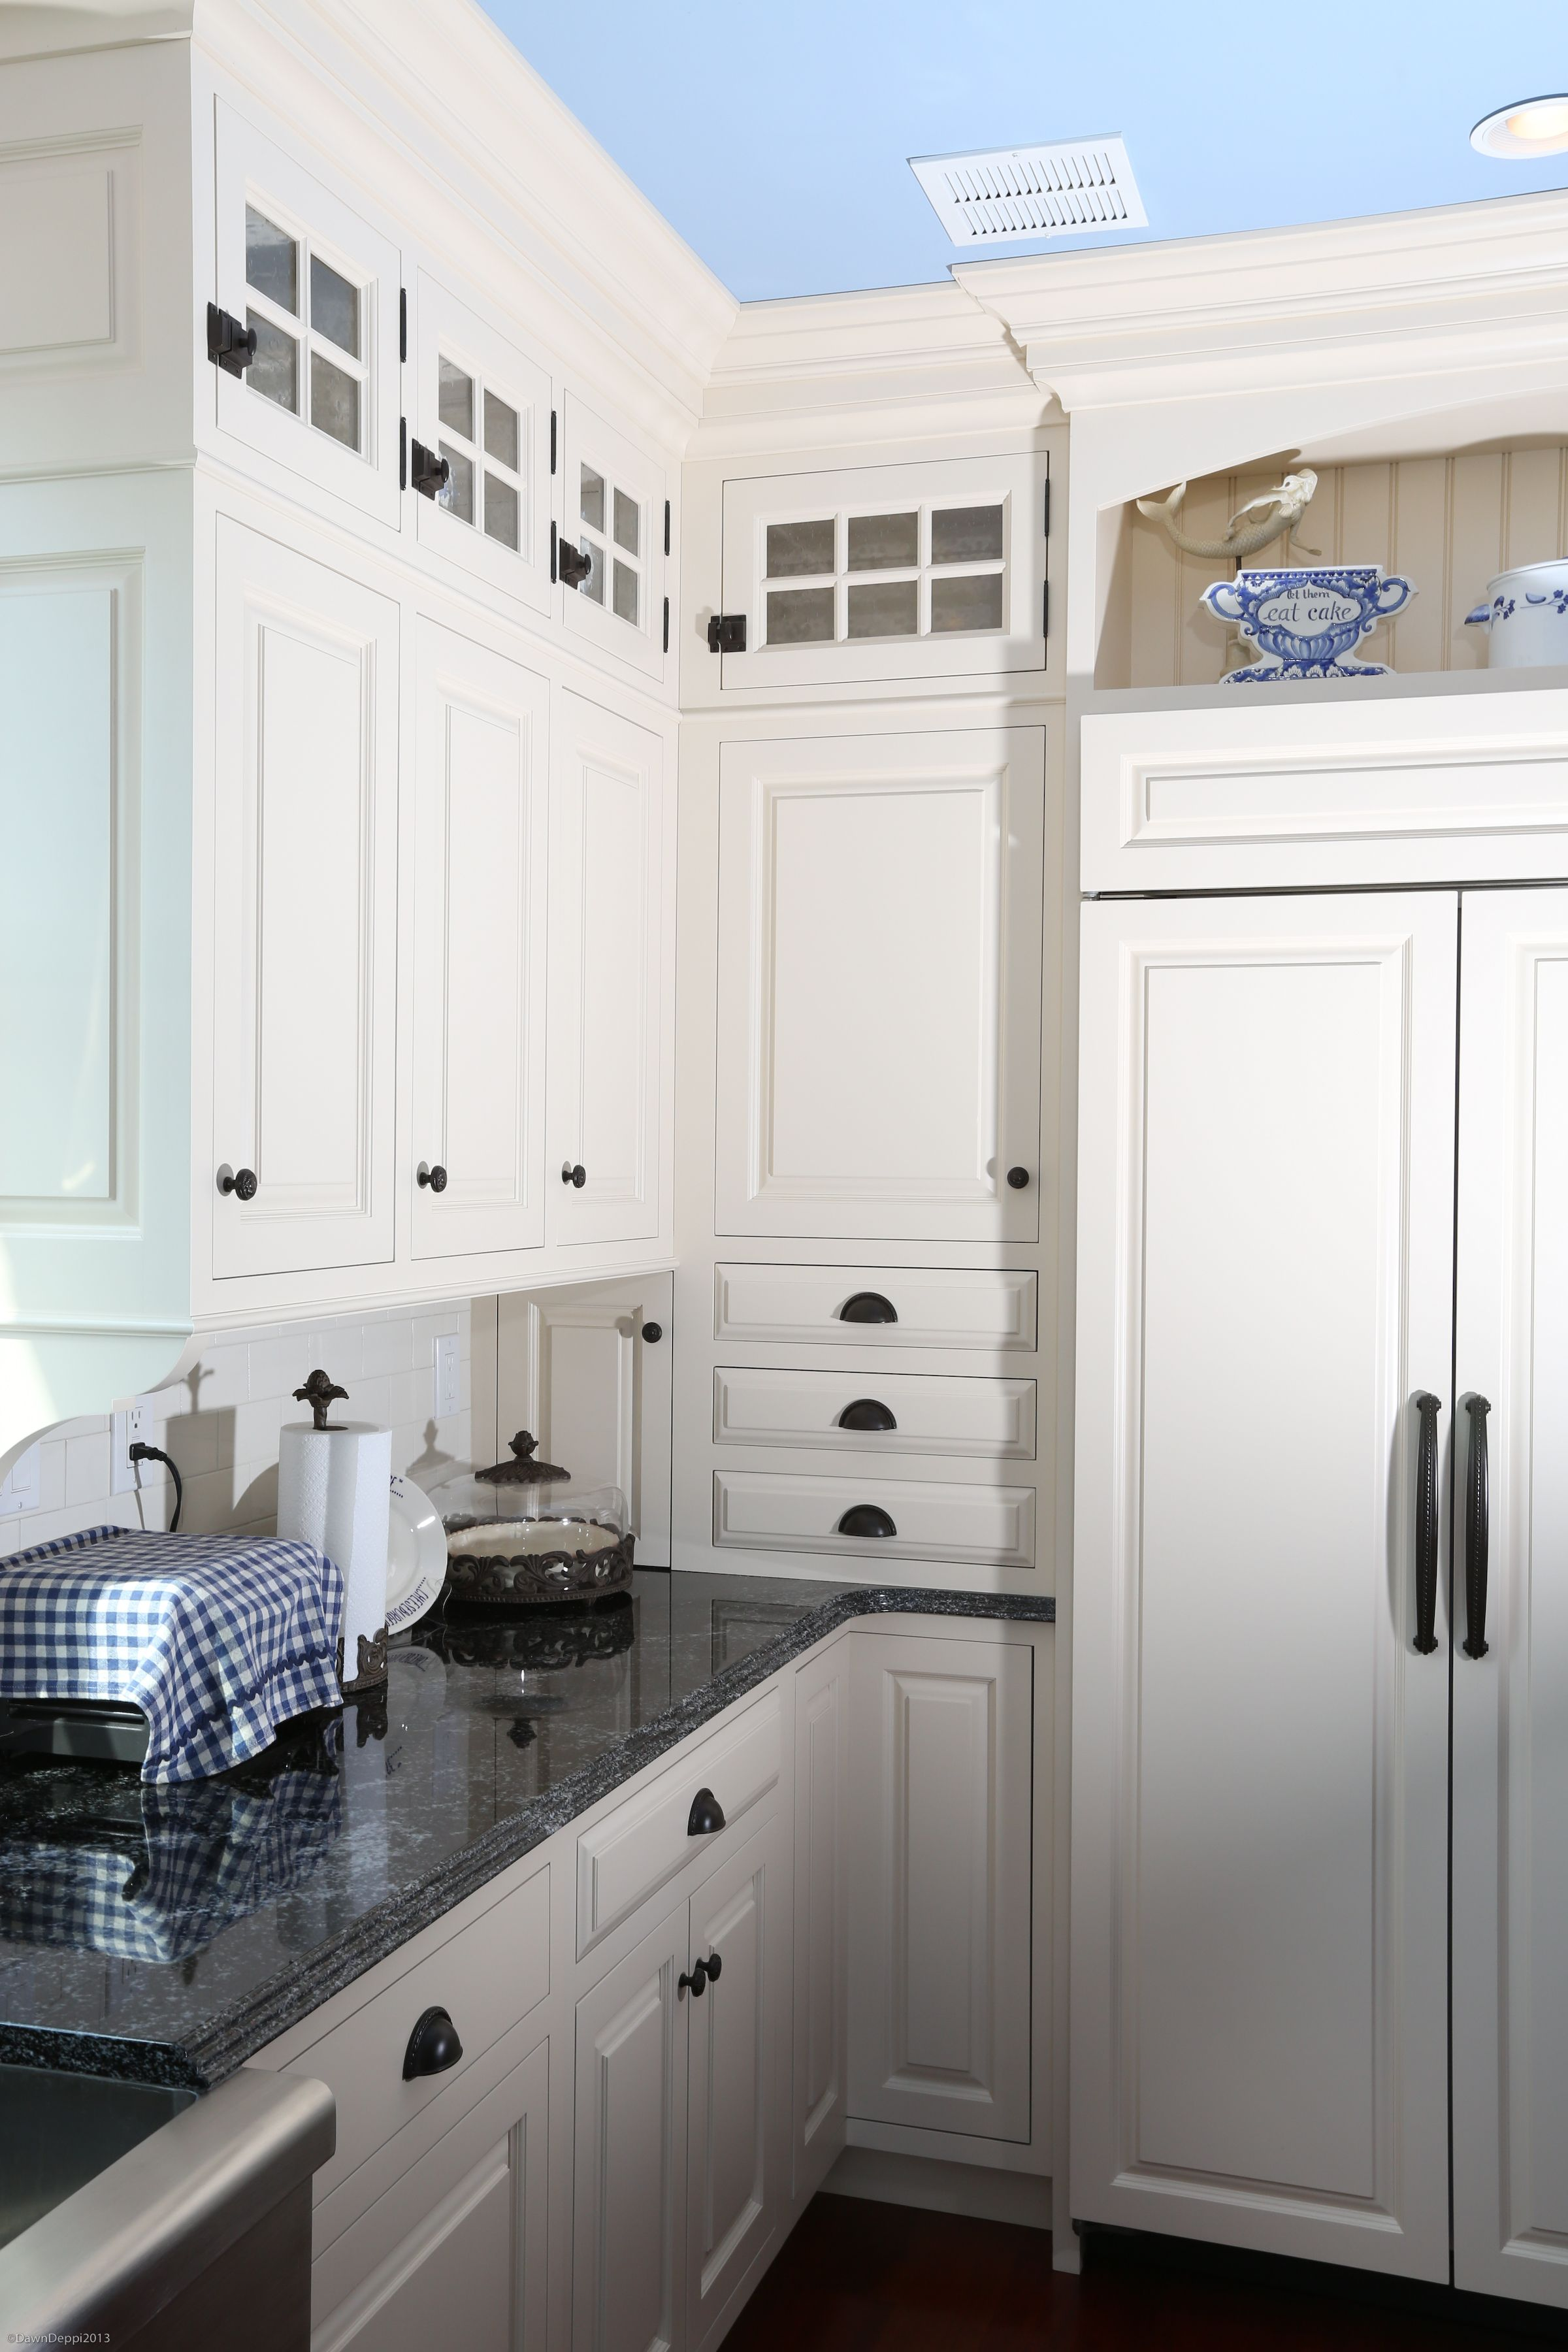 White Painted Cabinetry Counter Wall Cabinet Detail With